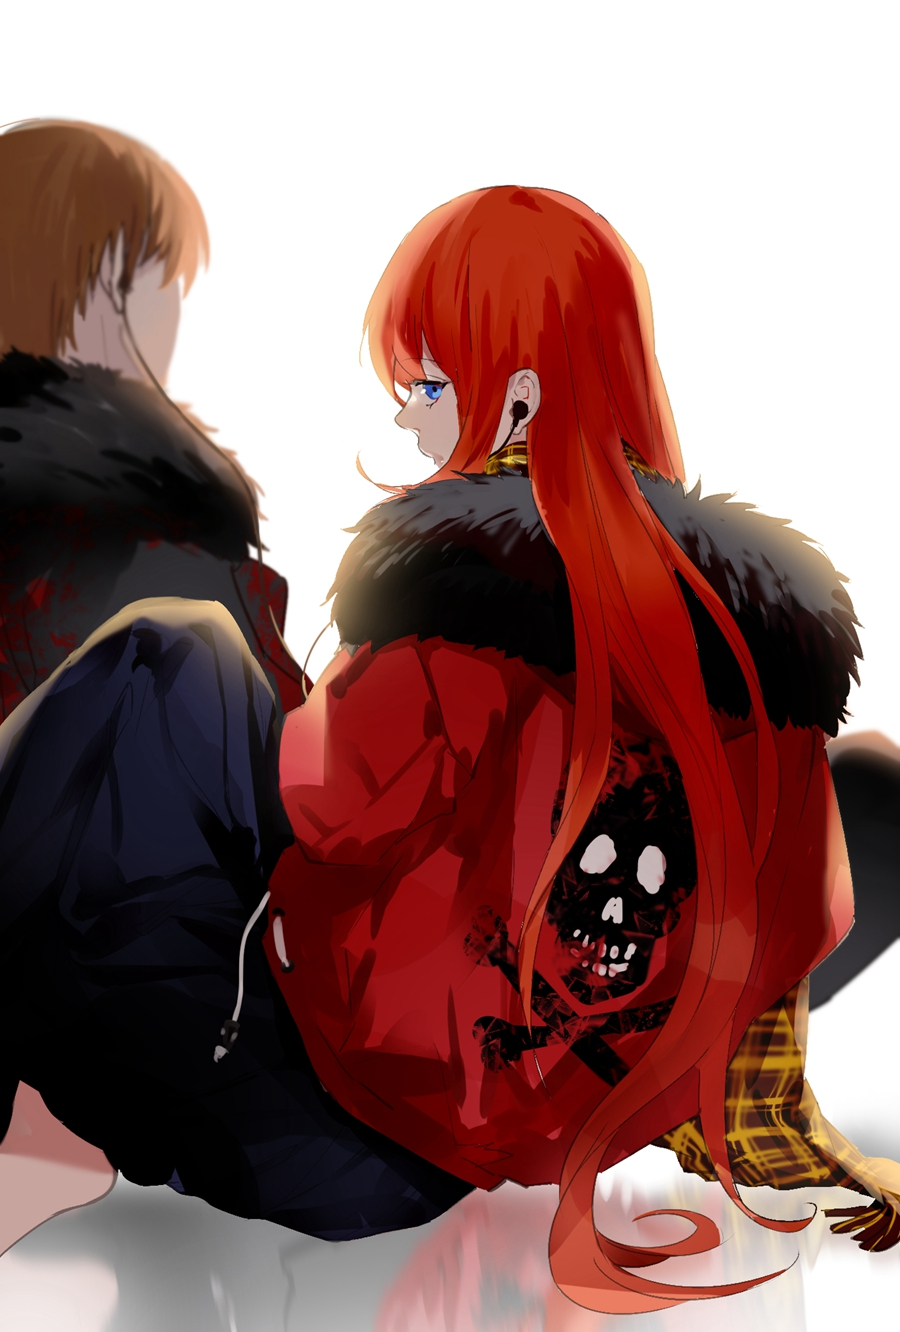 alternate_costume blue_eyes brown_hair contemporary earphones earphones fur_collar gintama highres jacket kagura_(gintama) loli_bushi long_hair looking_at_viewer looking_back okita_sougo orange_hair reflective_floor scarf shared_earphones short_hair simple_background sitting skull_and_crossbones solo_focus white_background